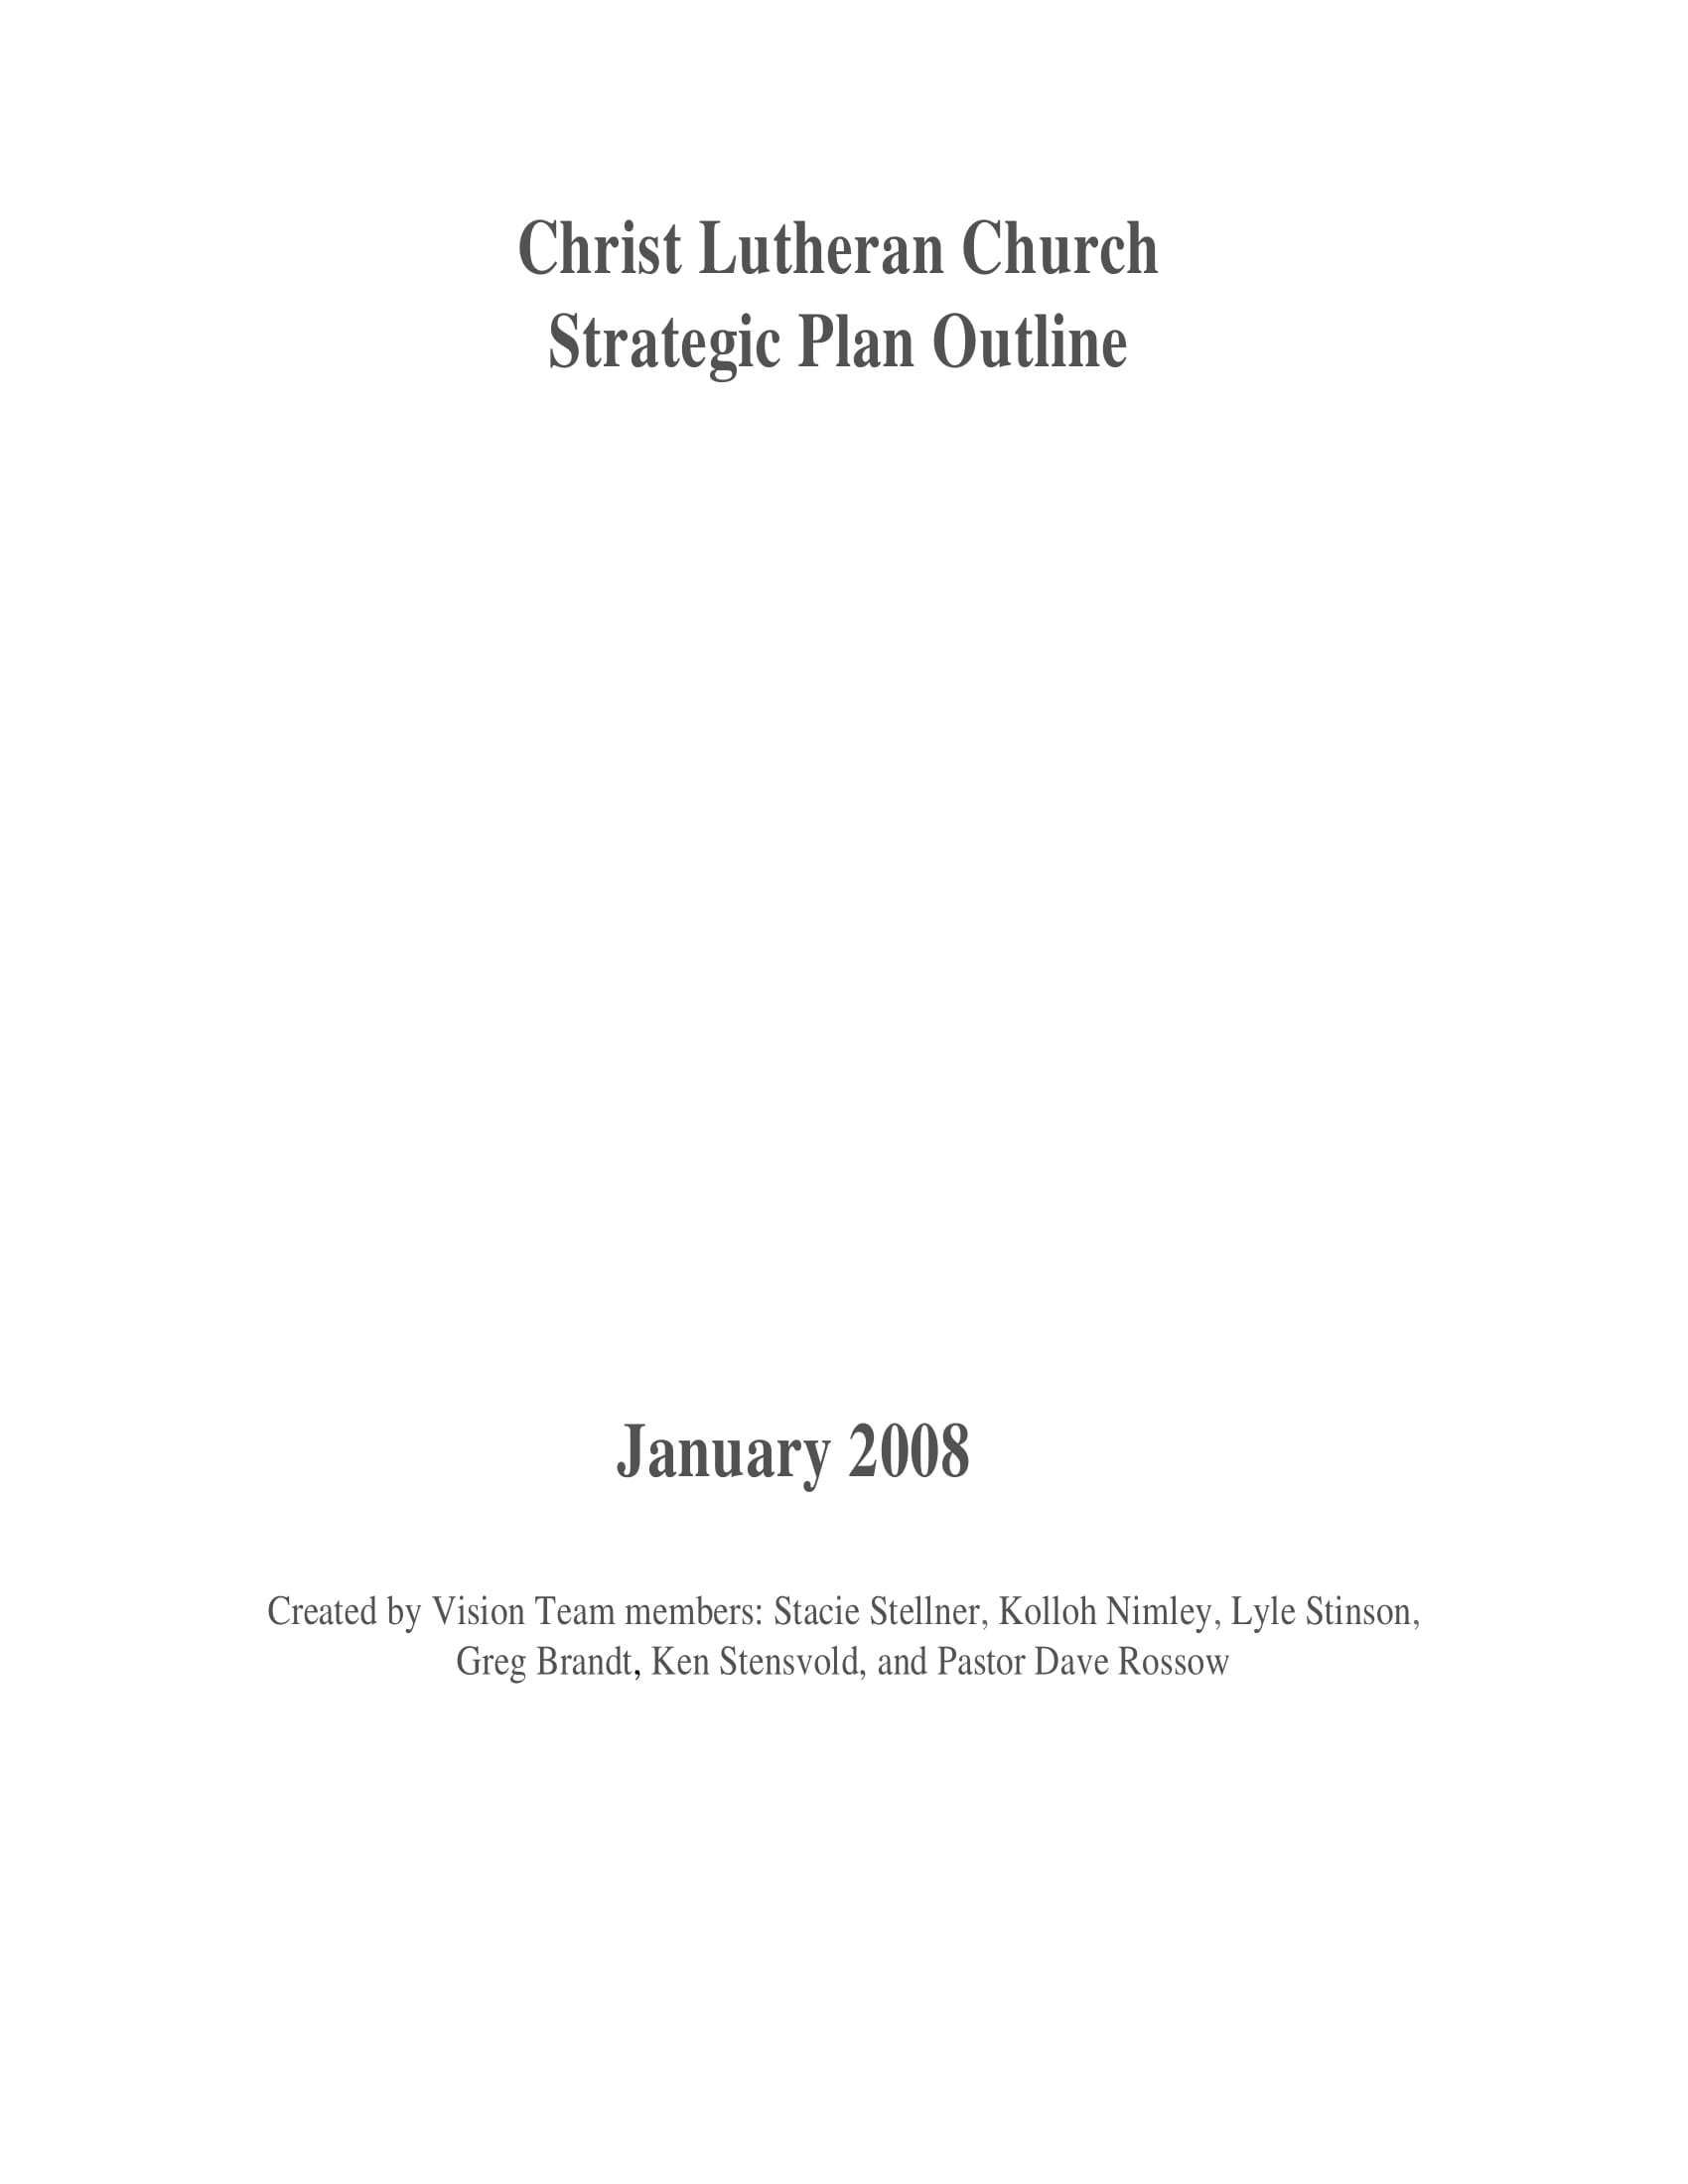 church strategic plan outline example 01